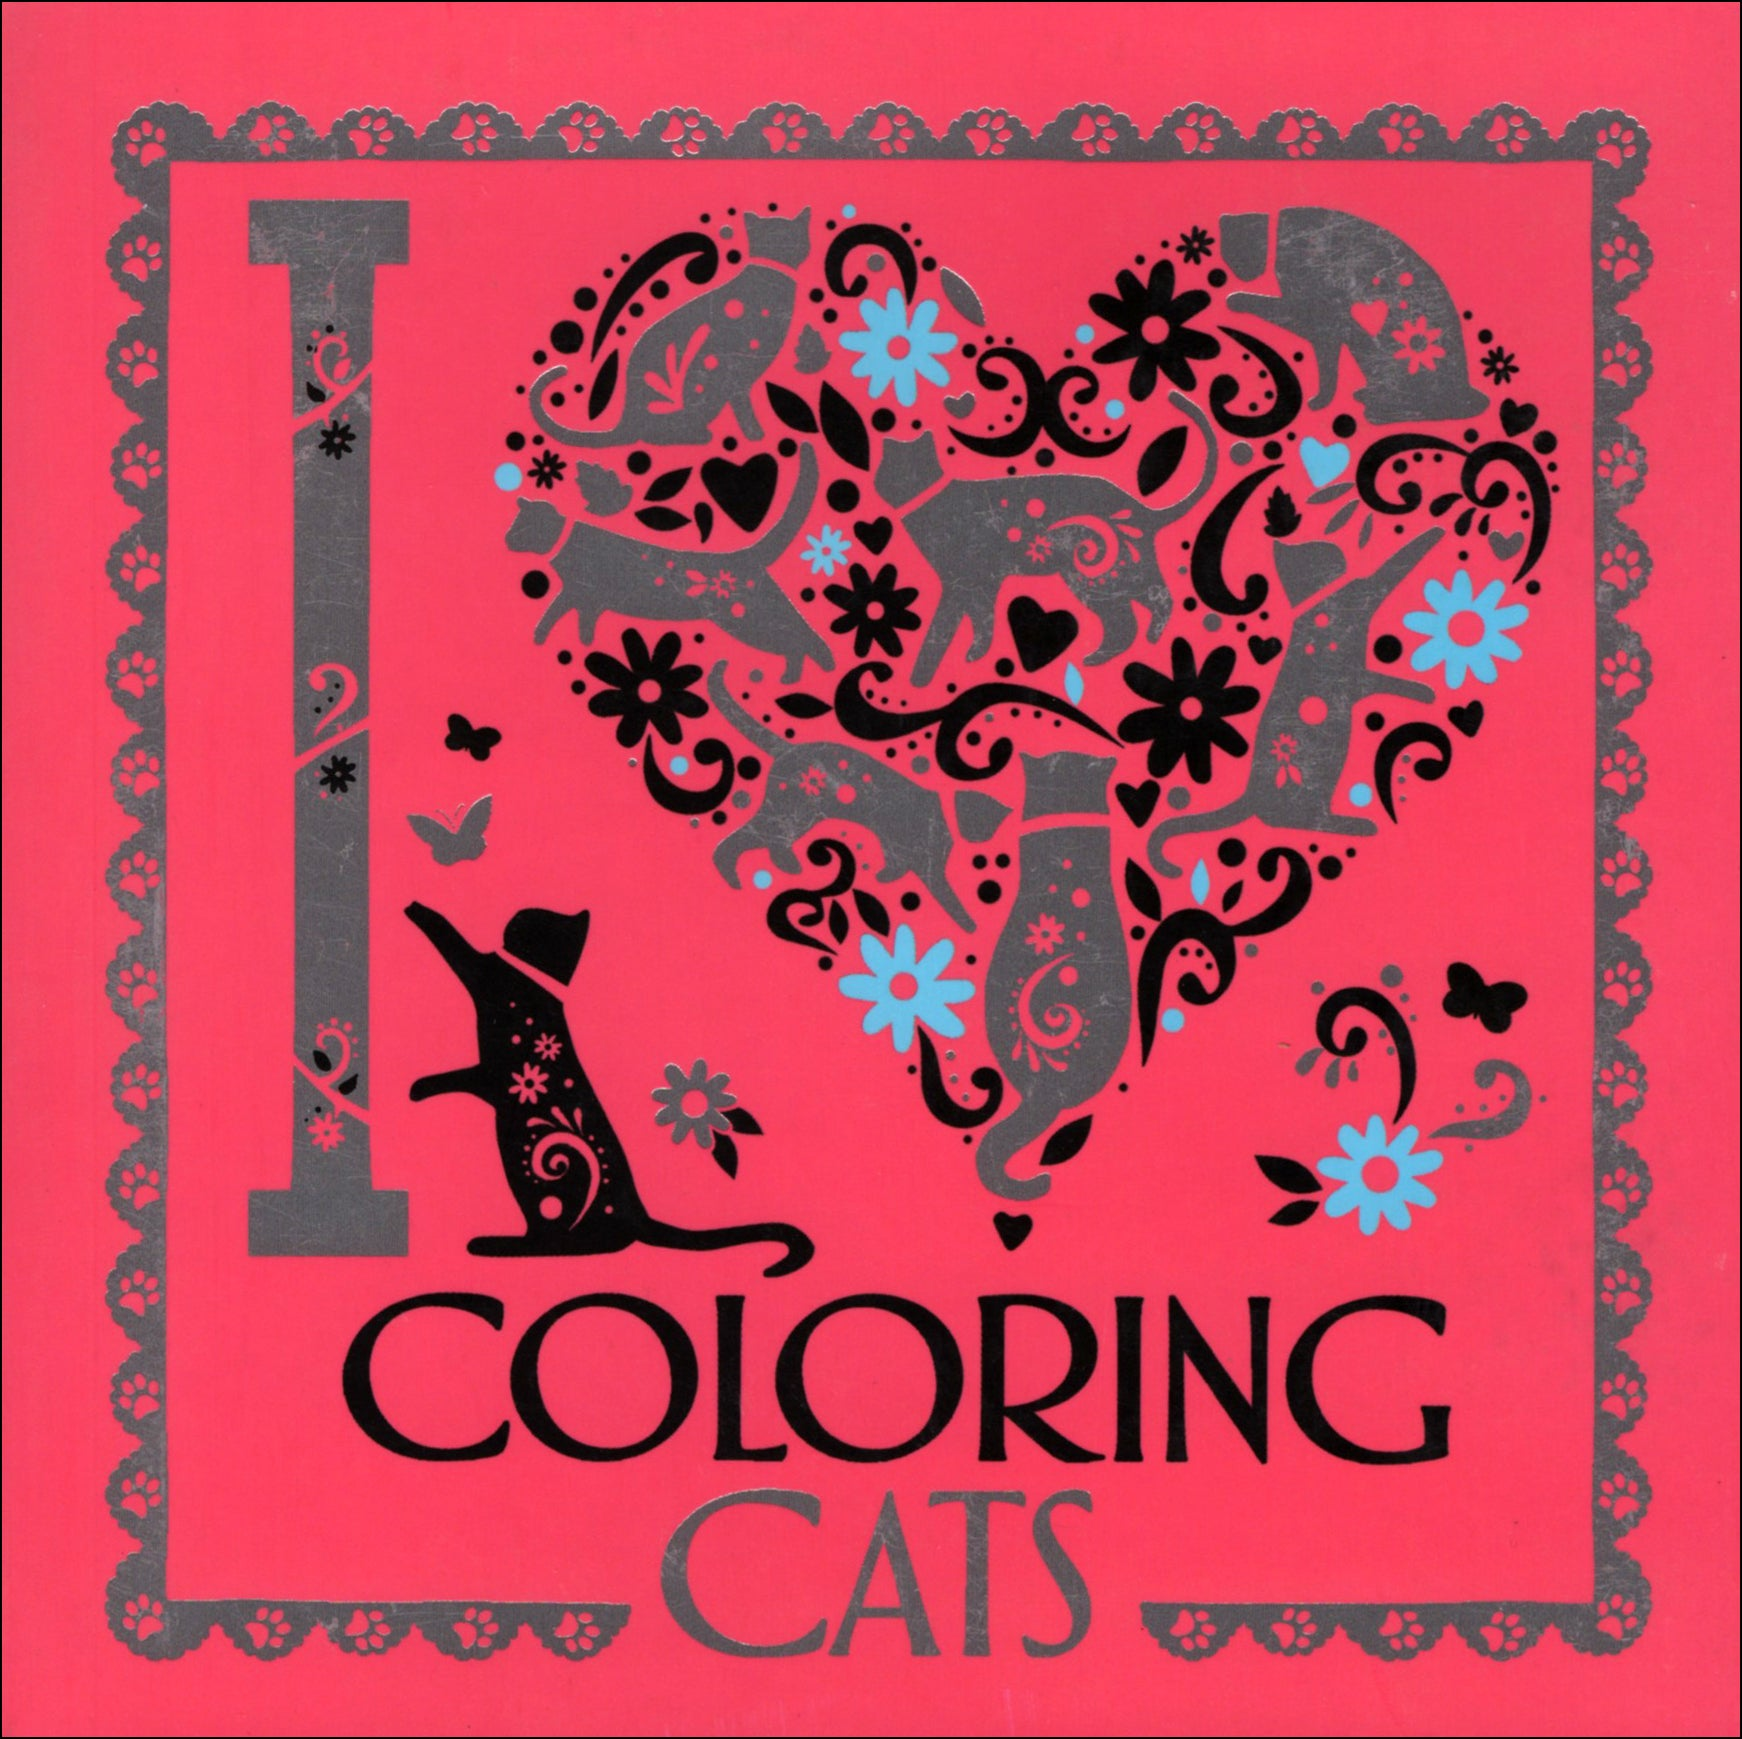 I Heart Coloring Cats